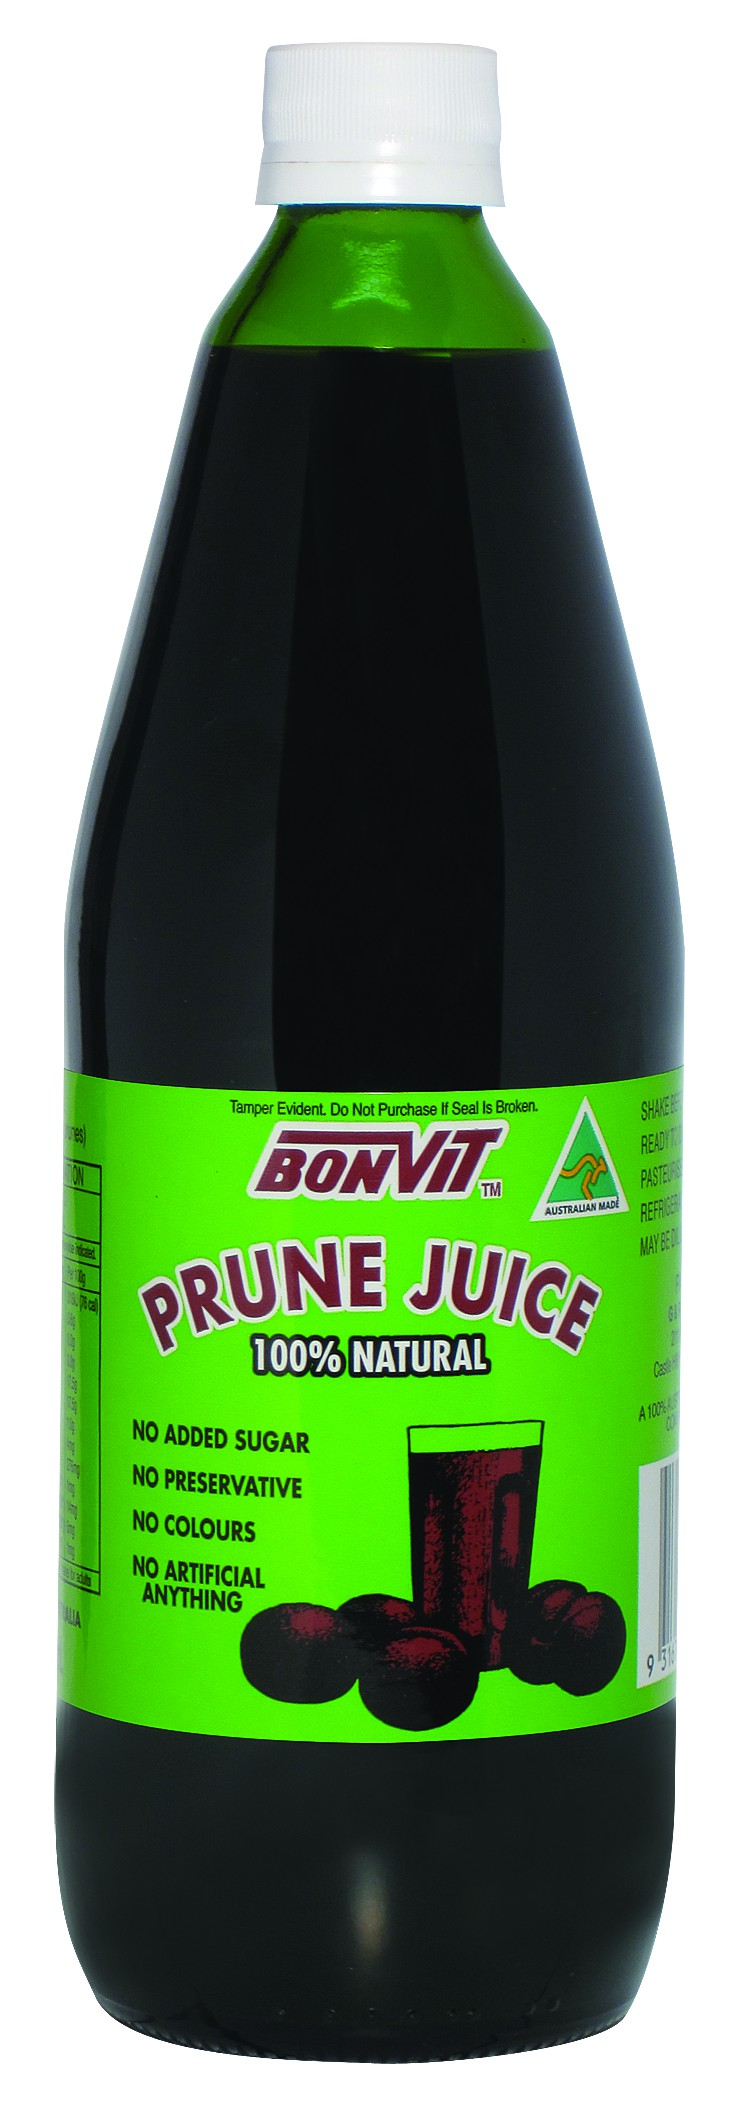 Bonvit, Prune Juice, 100 % Natural, 750 ml